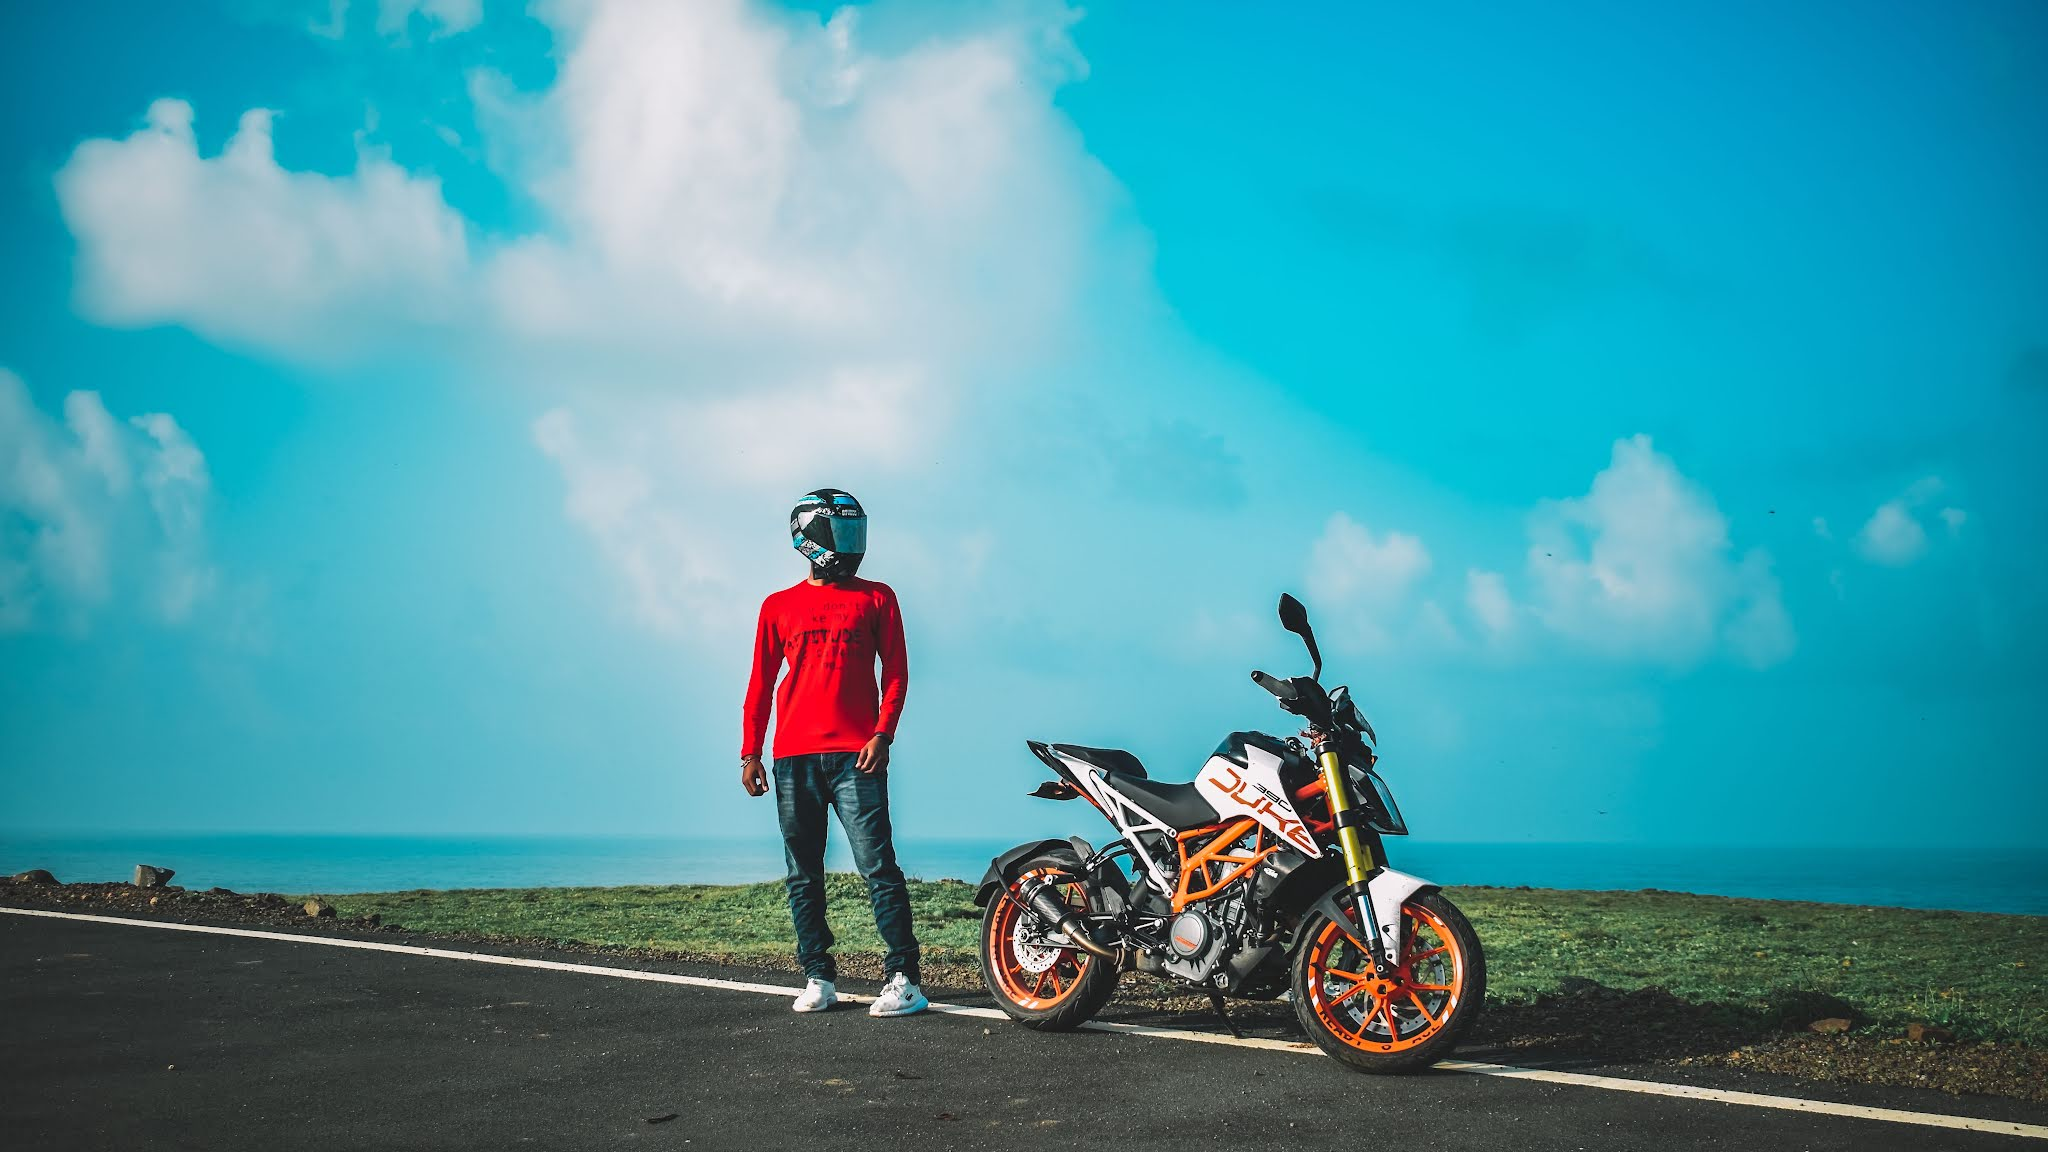 KTM 390 Duke Price, Mileage, Specifications, Colors, Top Speed and Services